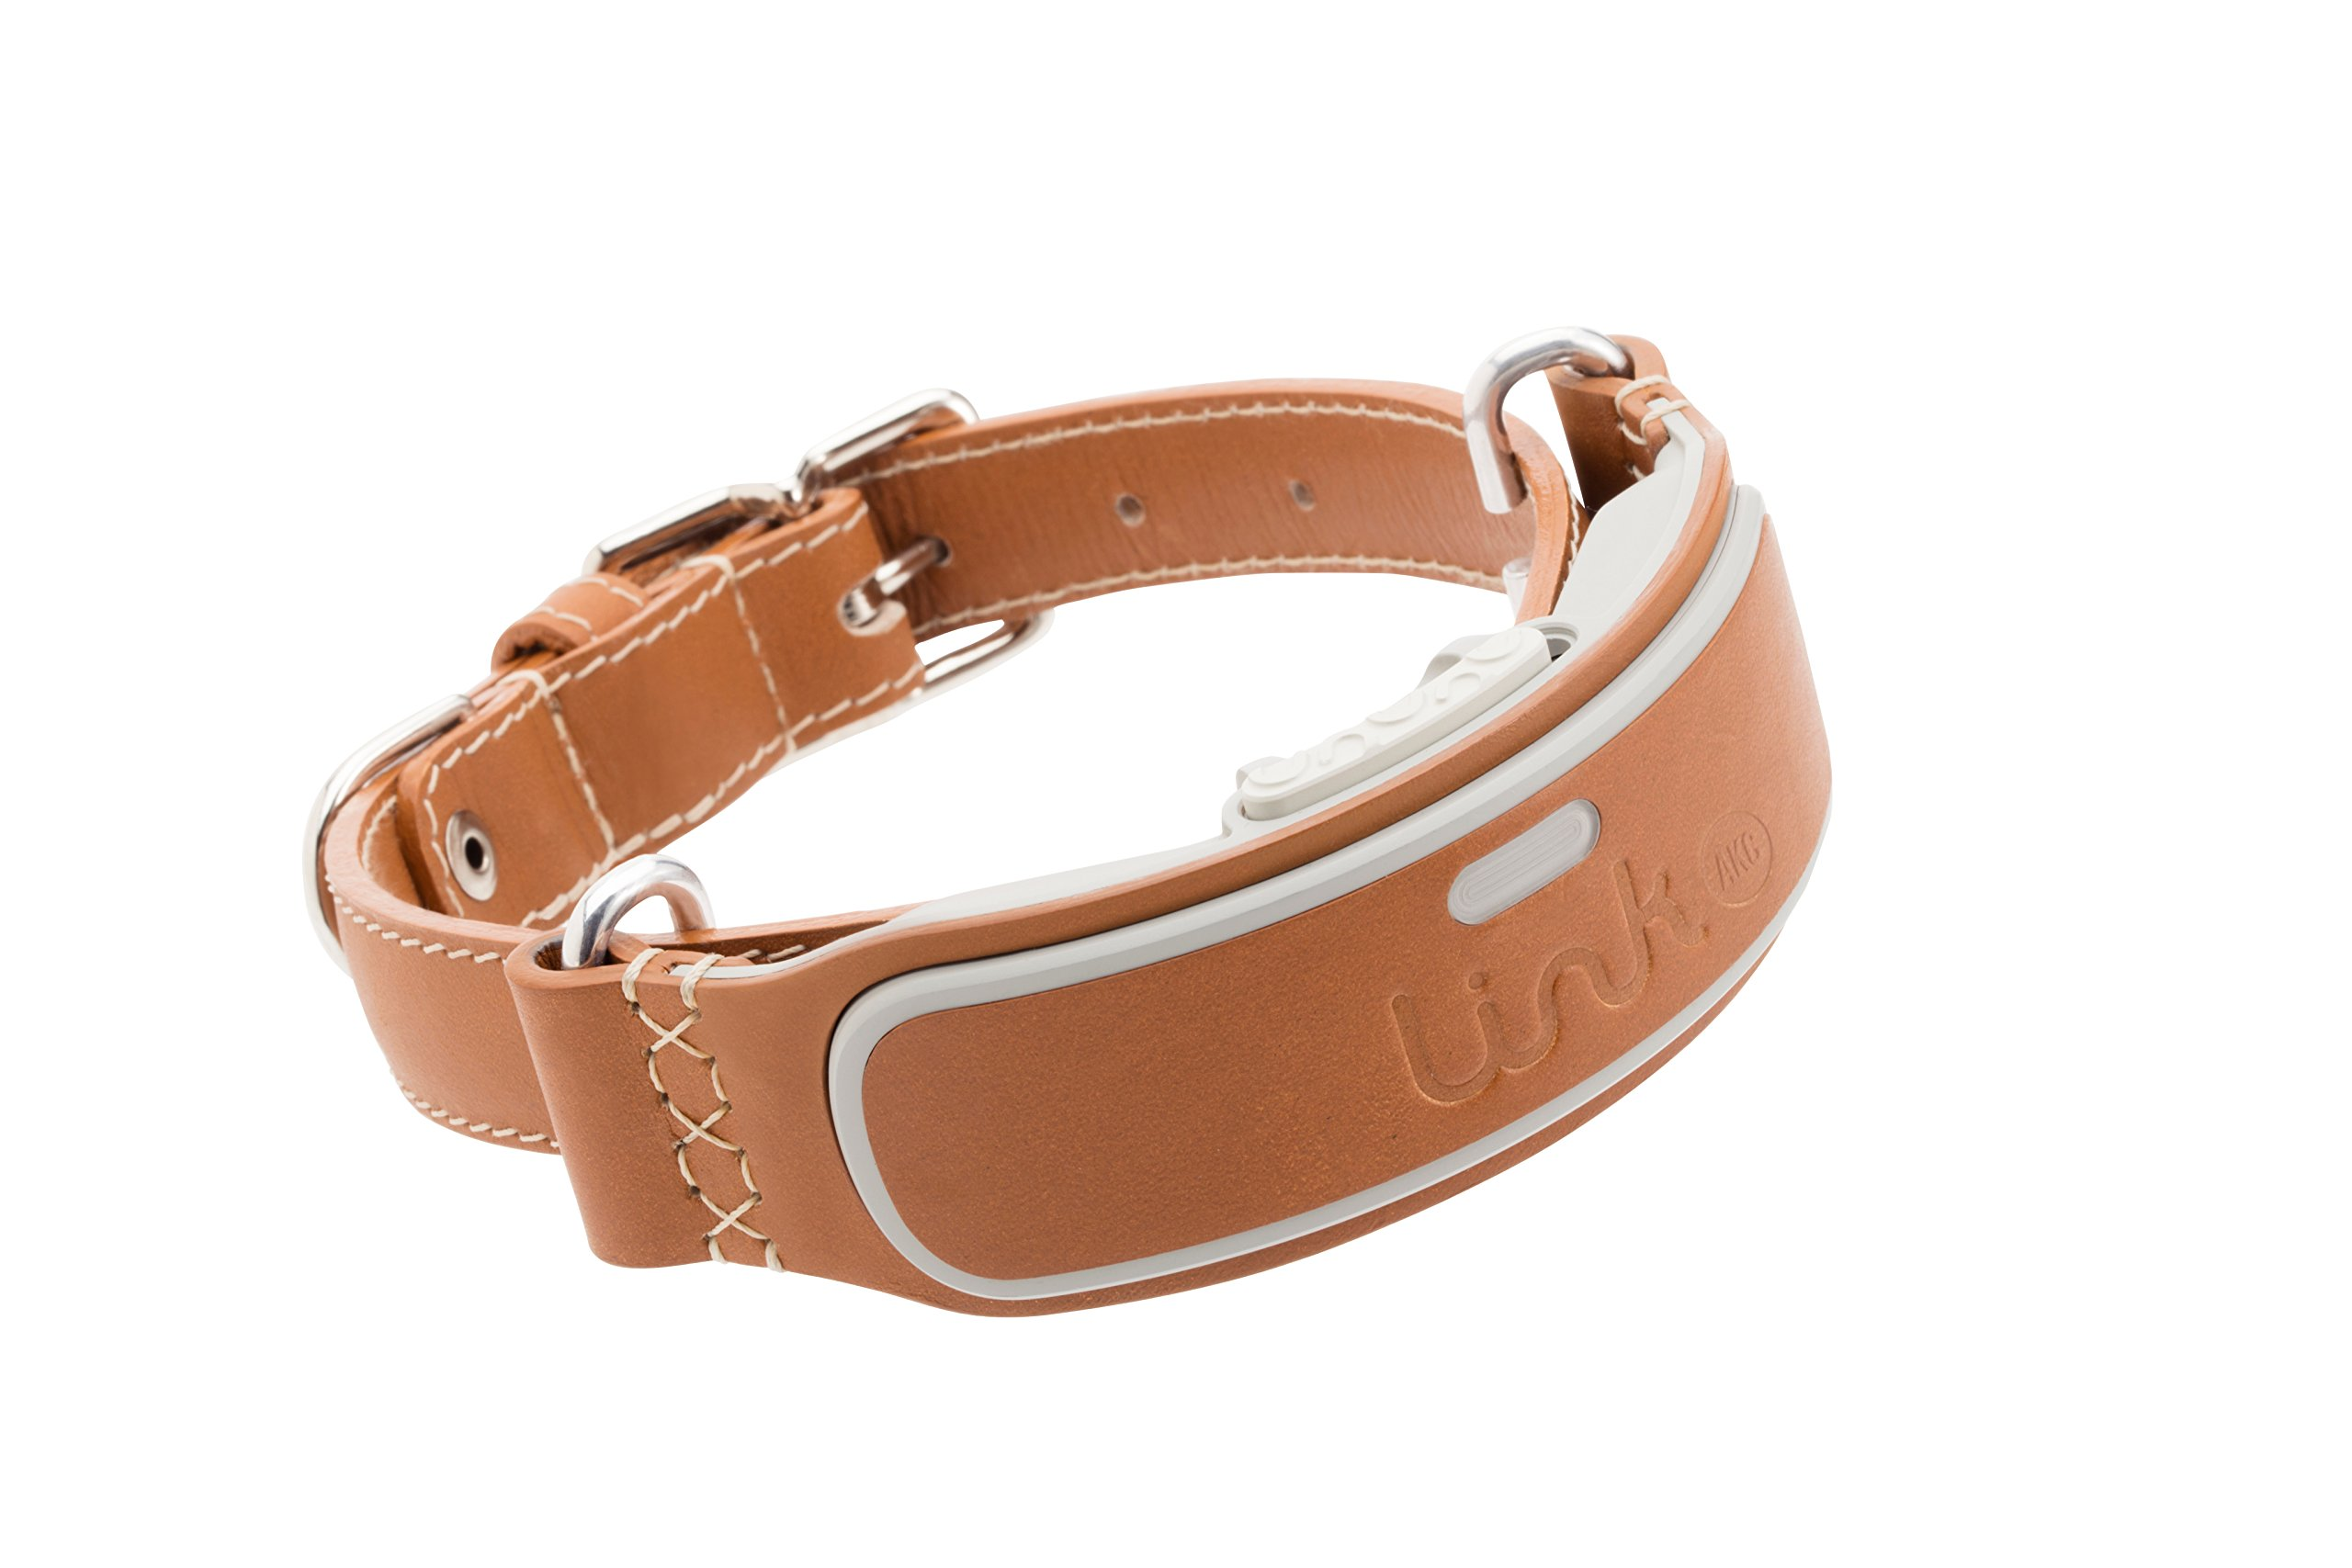 LINK AKC Smart Dog Collar - GPS Location Tracker, Activity Monitor, and More, Large (KITTN03)